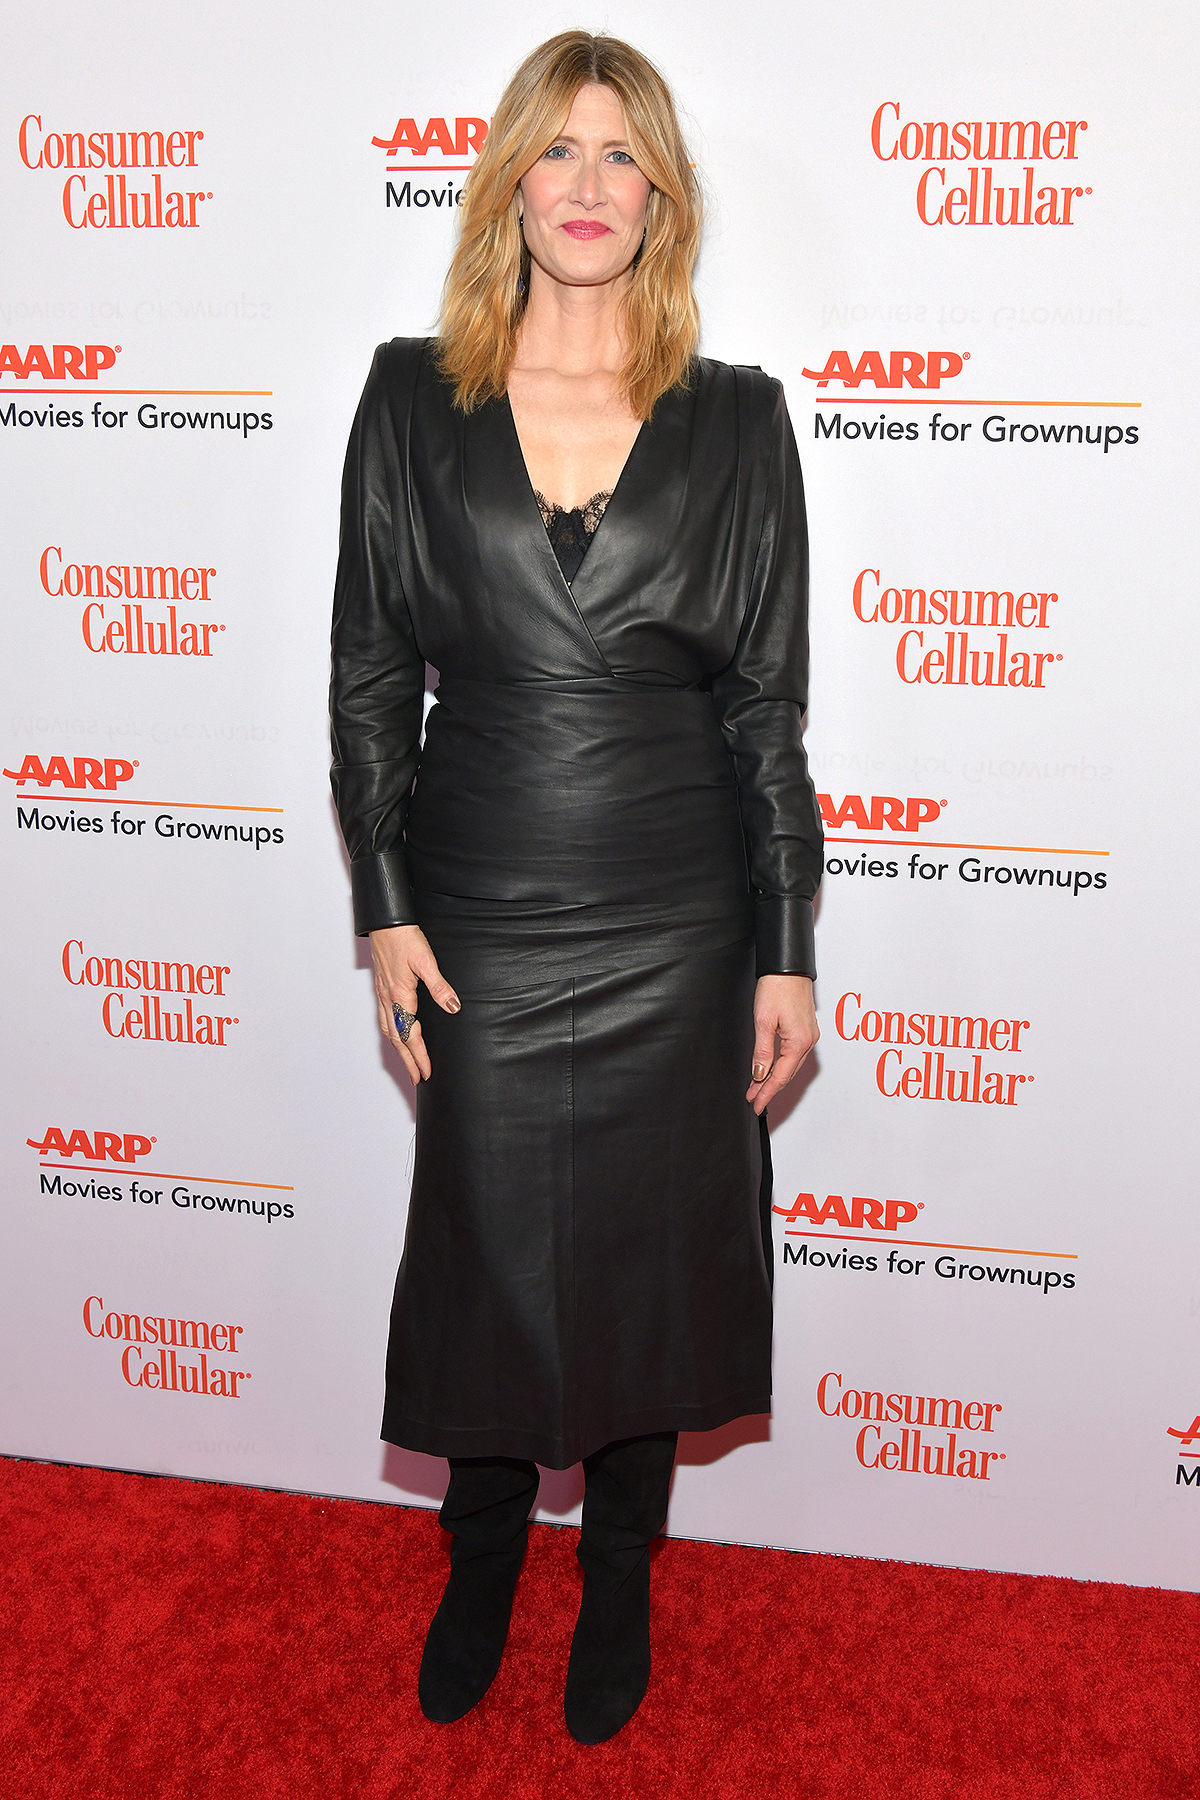 Laura Dern attends AARP The Magazine's 19th Annual Movies For Grownups Awards at Beverly Wilshire, A Four Seasons Hotel on January 11, 2020